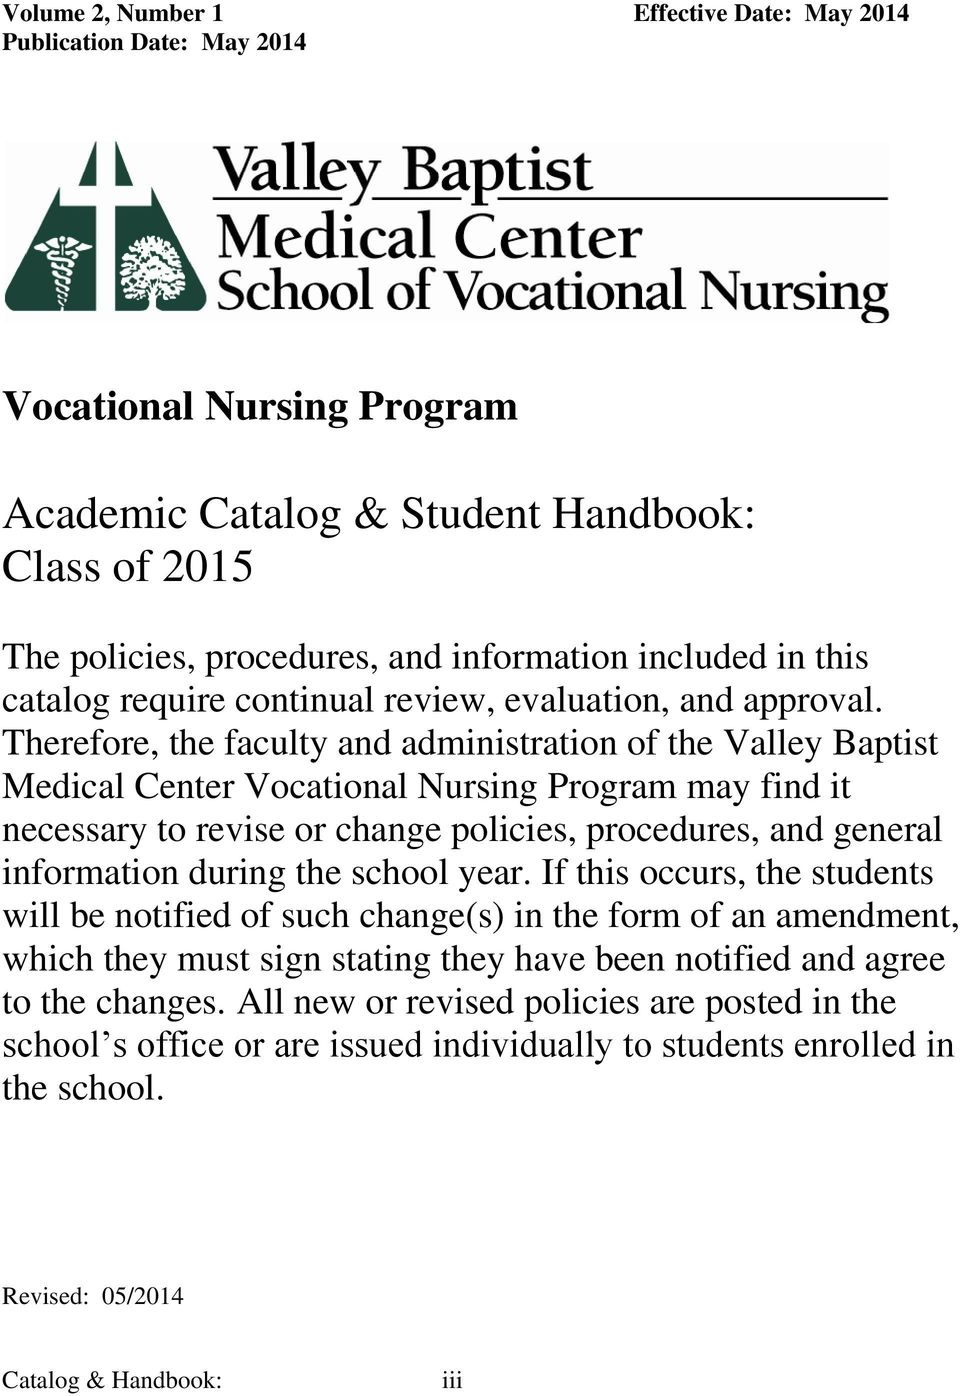 Therefore, the faculty and administration of the Valley Baptist Medical Center Vocational Nursing Program may find it necessary to revise or change policies, procedures, and general information